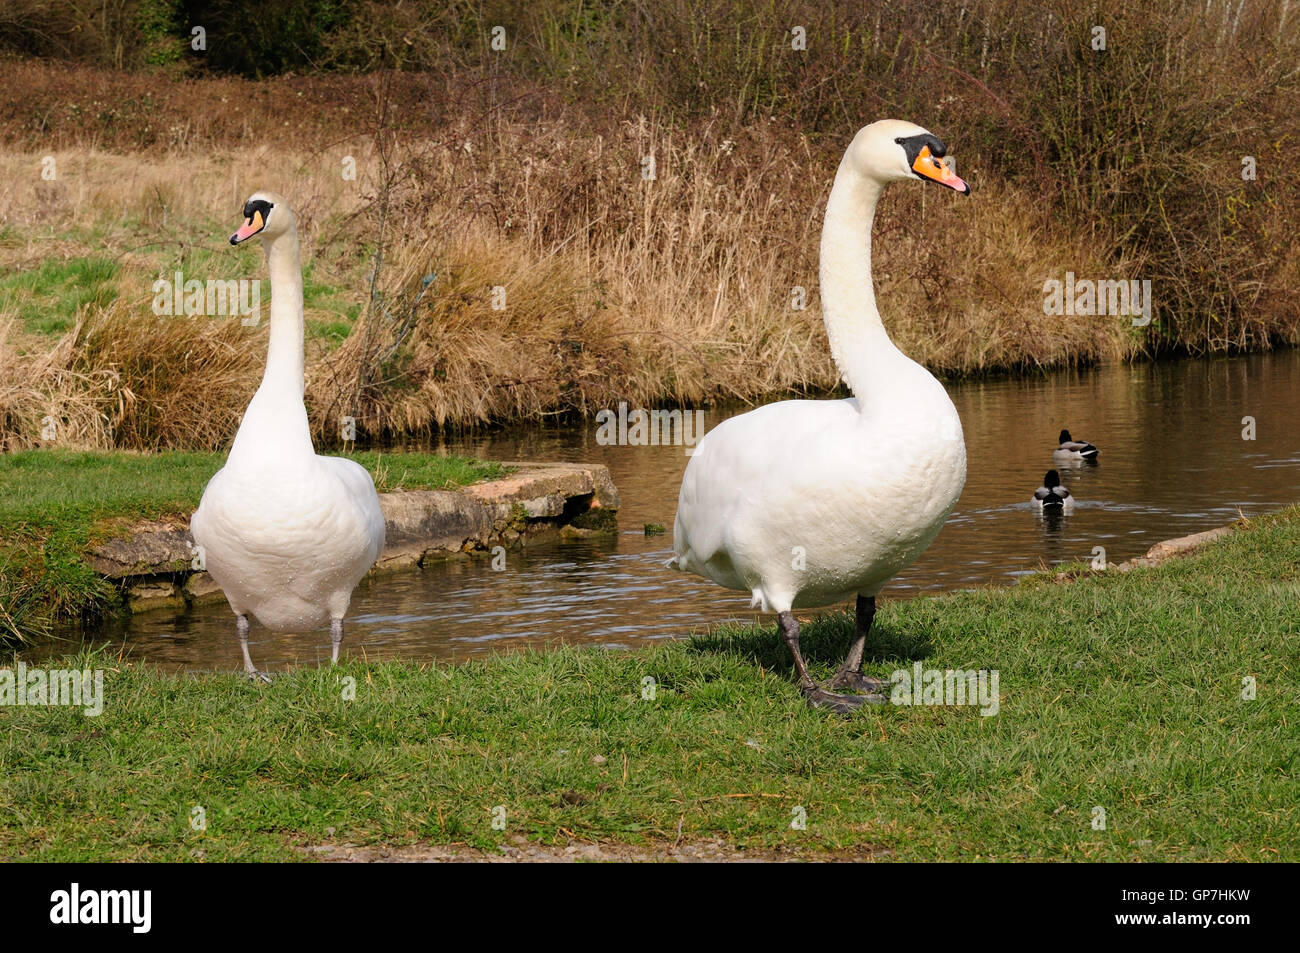 A pair of mute swans standing on a canal bank with necks raised in an aggressive manner (Cygnus olor). - Stock Image